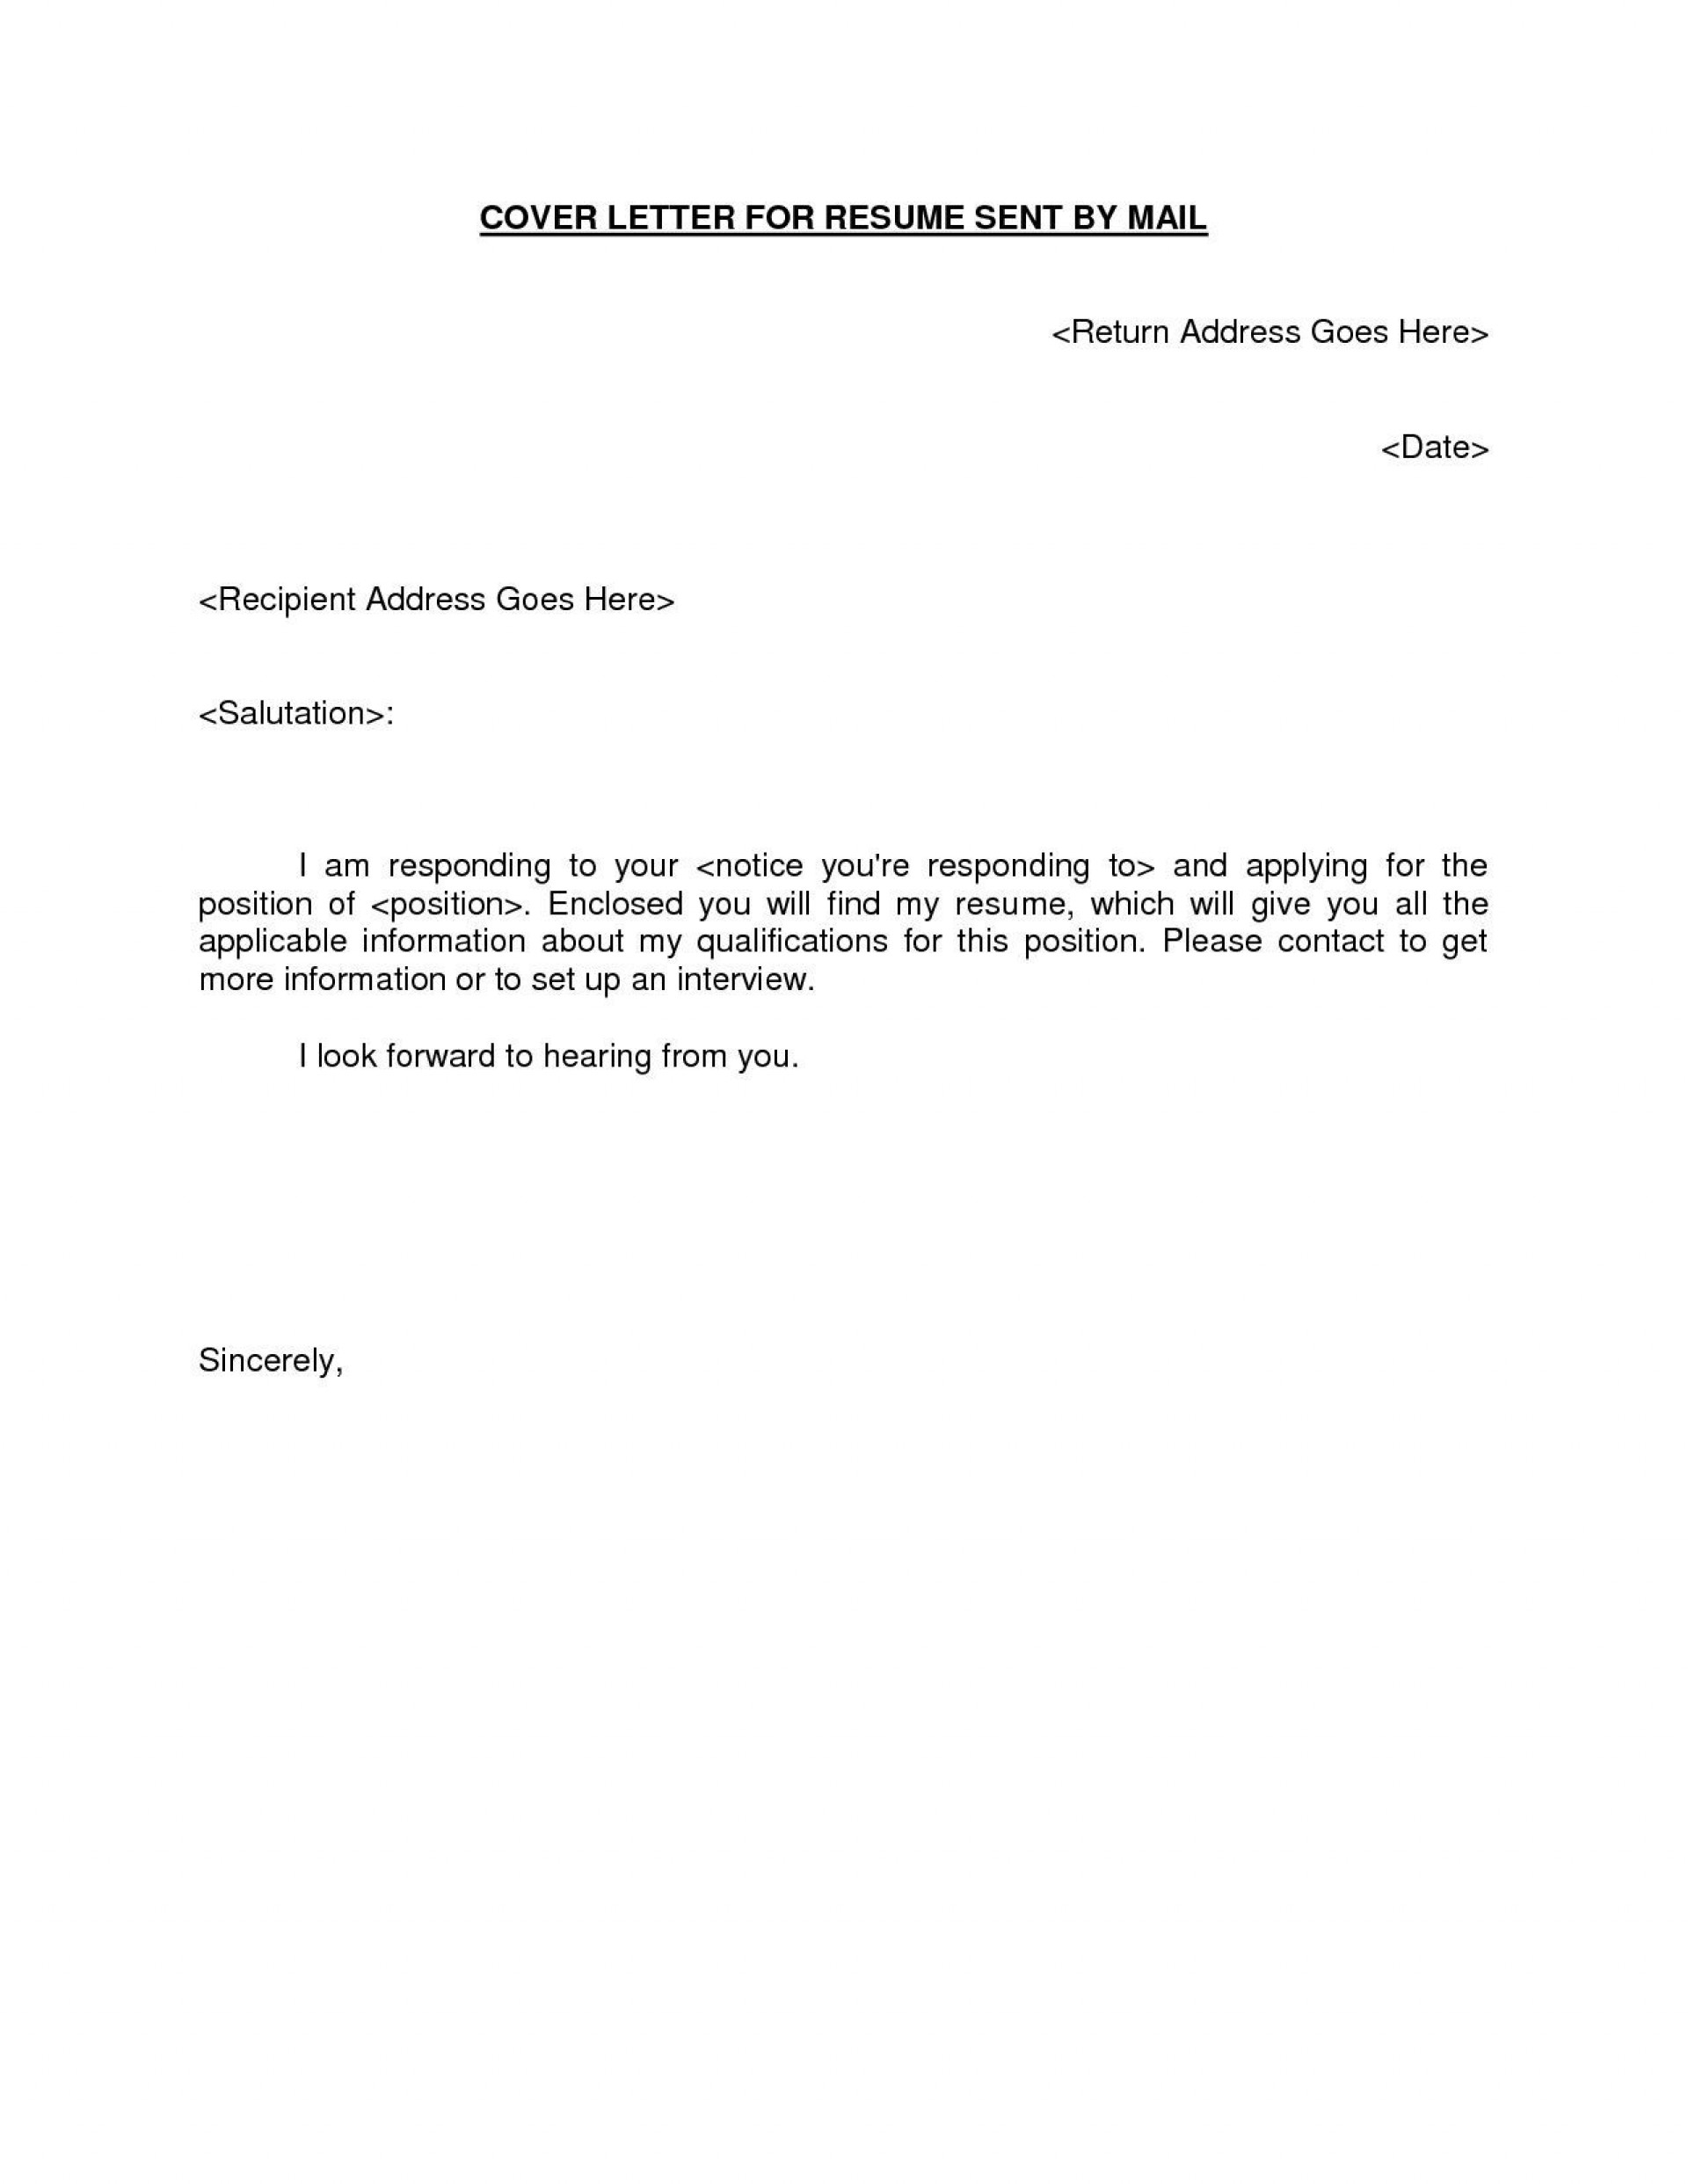 002 Formidable Email Cover Letter Example For Resume Idea  Sample Through Attached1920